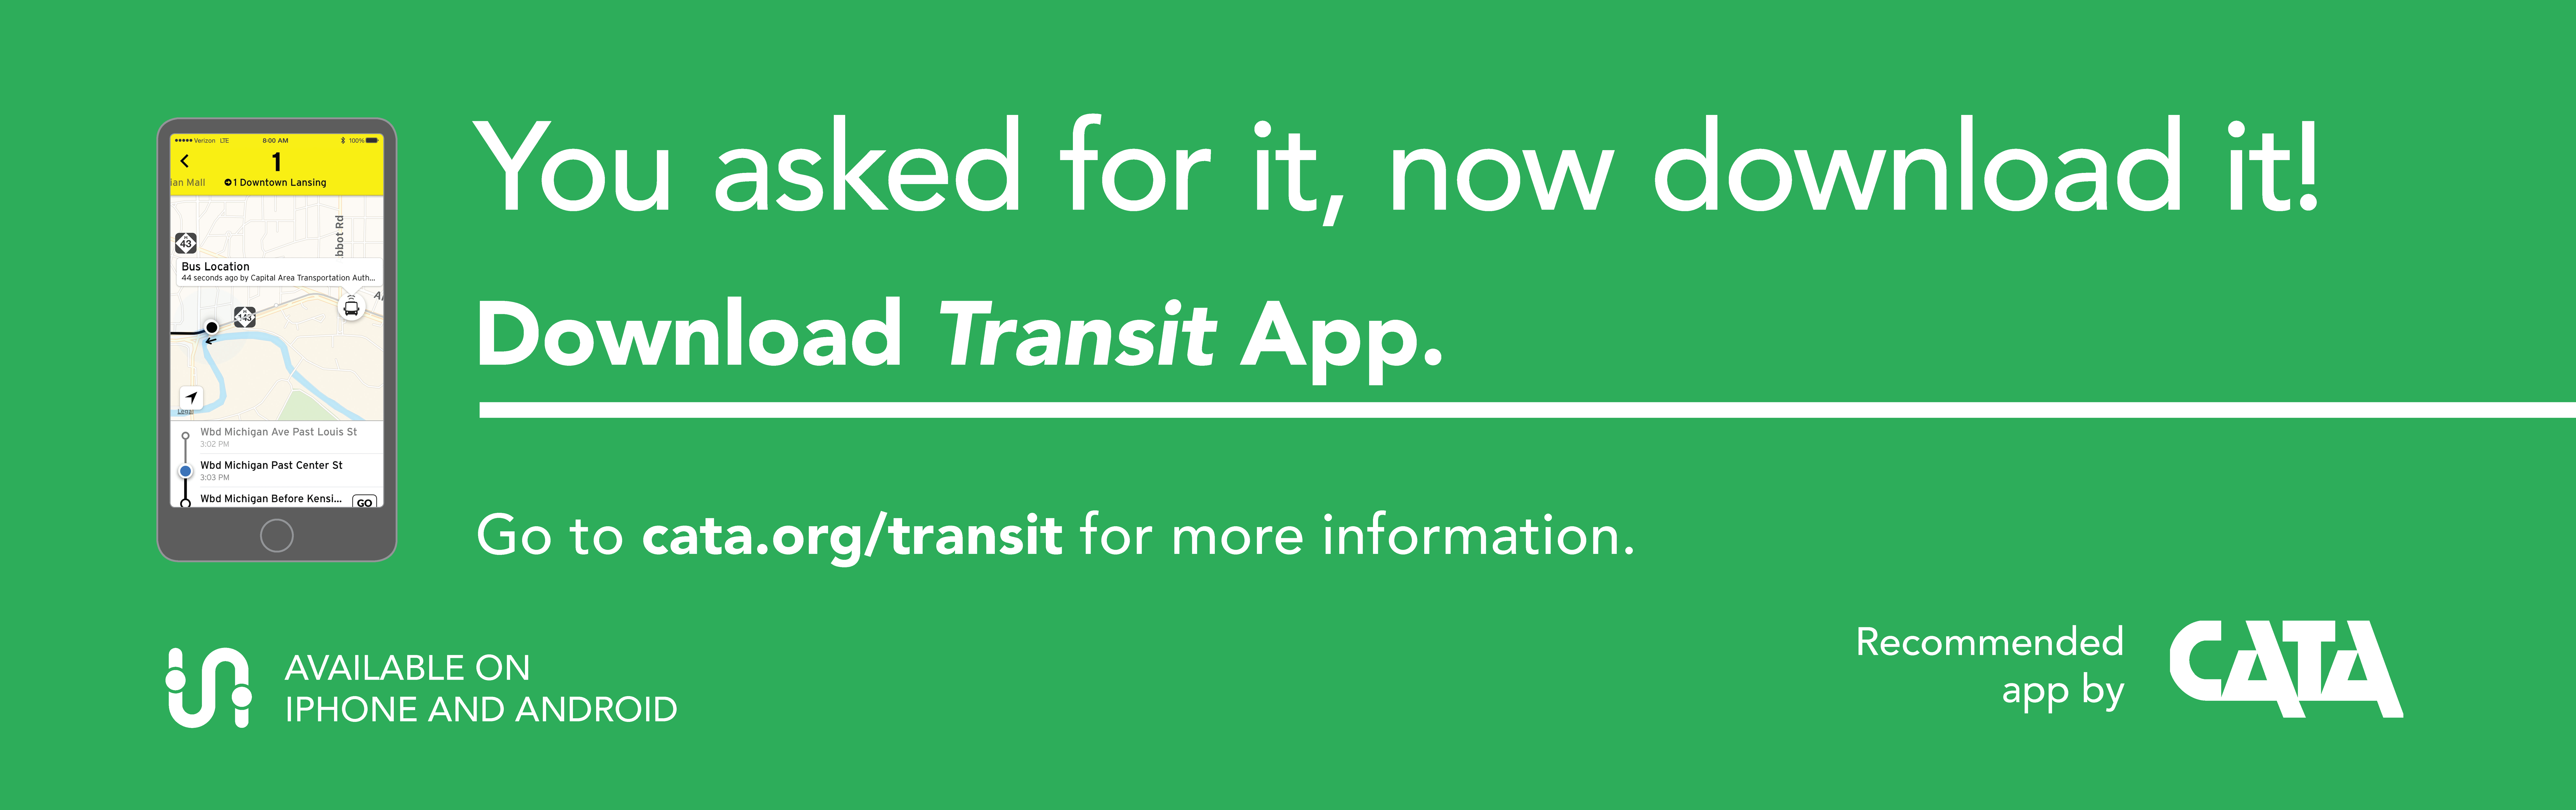 Mobile Apps   Rider Information   CATA